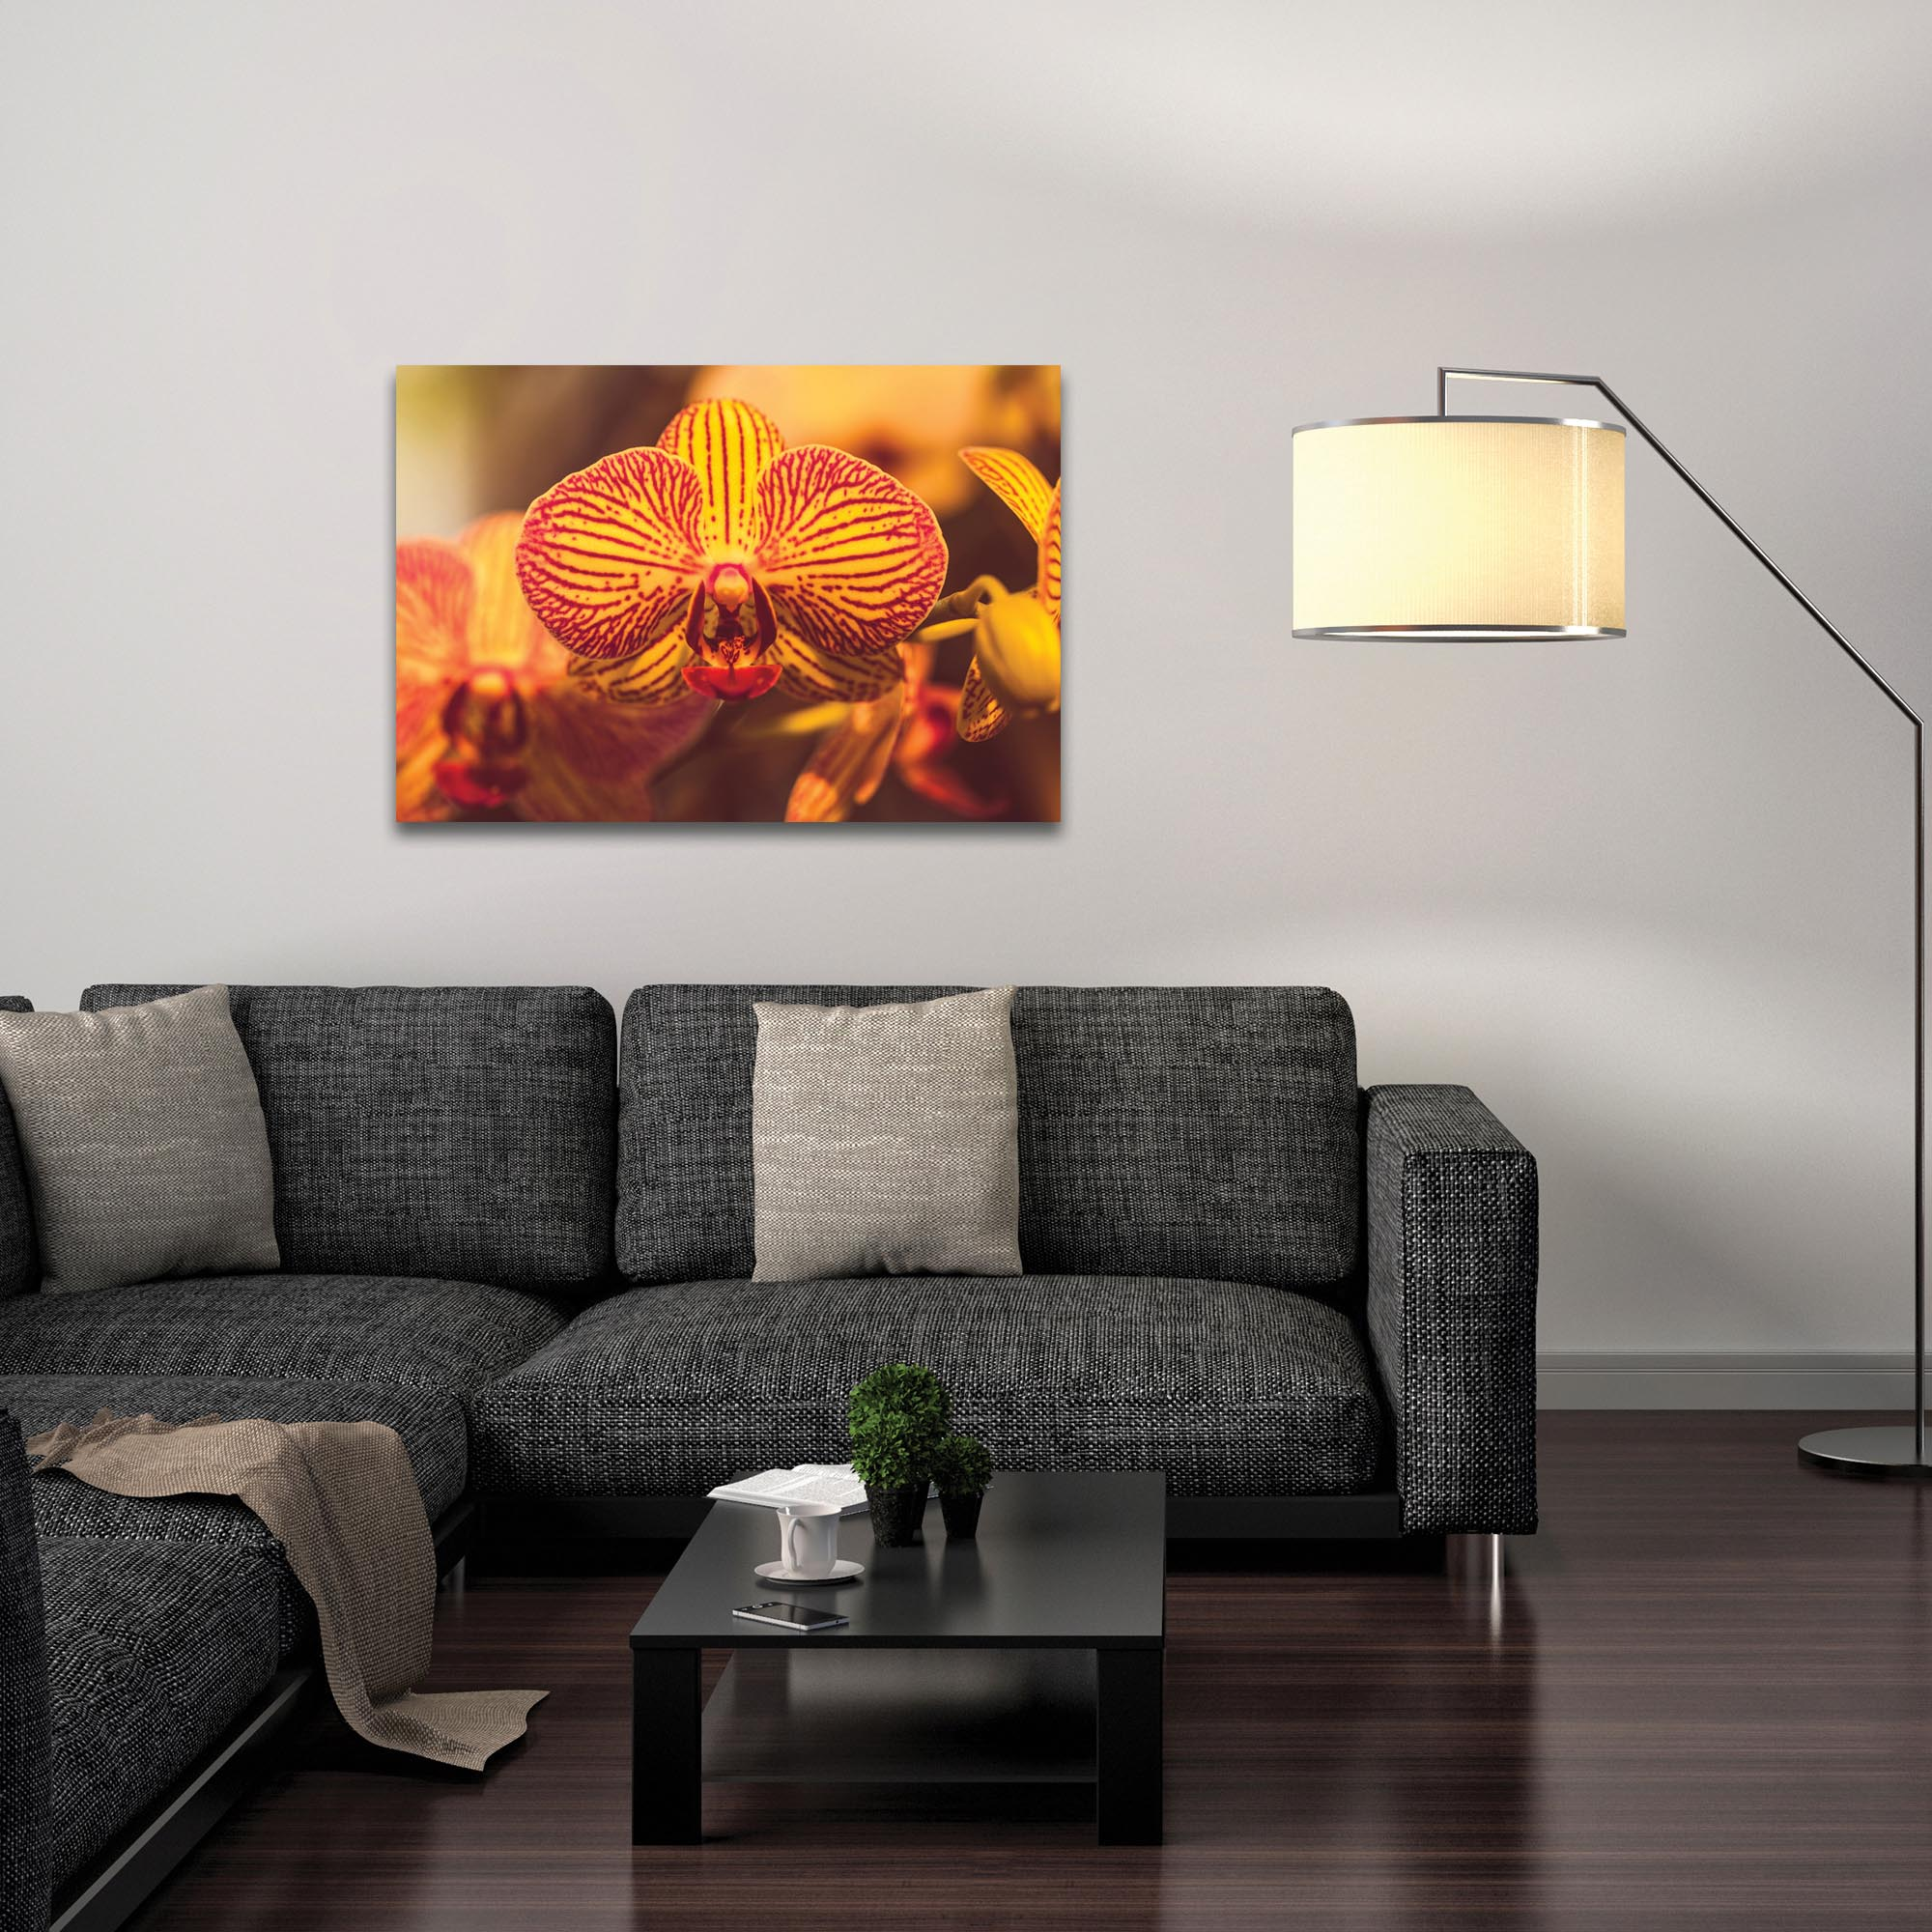 Nature Photography 'Sunset Bloom' - Flower Blossom Art on Metal or Plexiglass - Lifestyle View